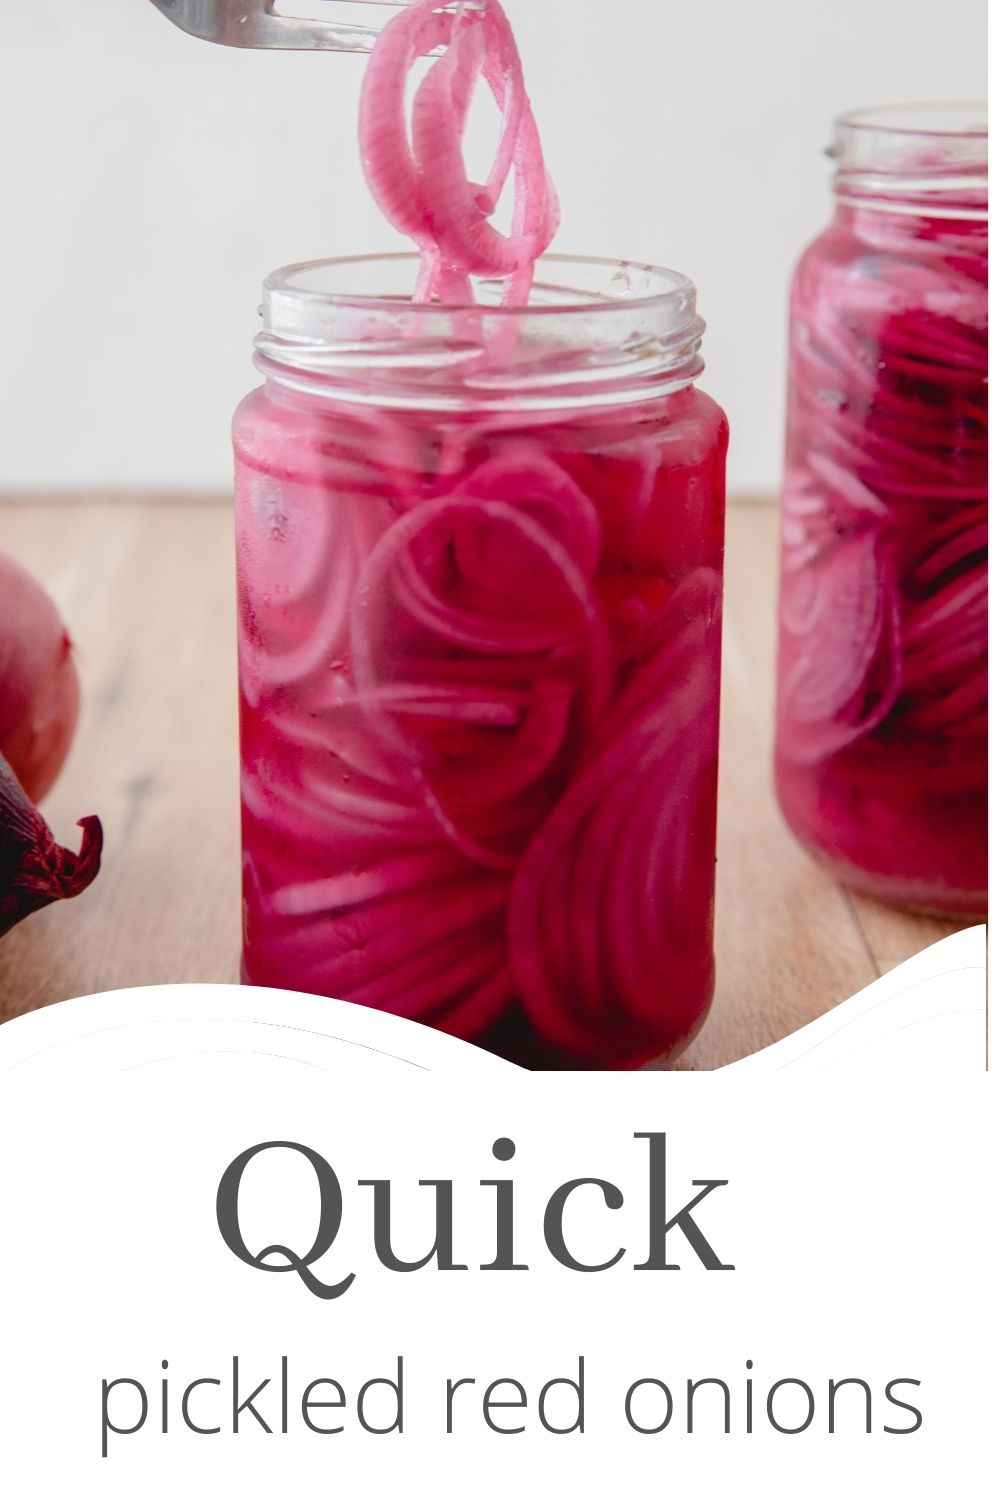 Quick Pickled Red Onions with logo.